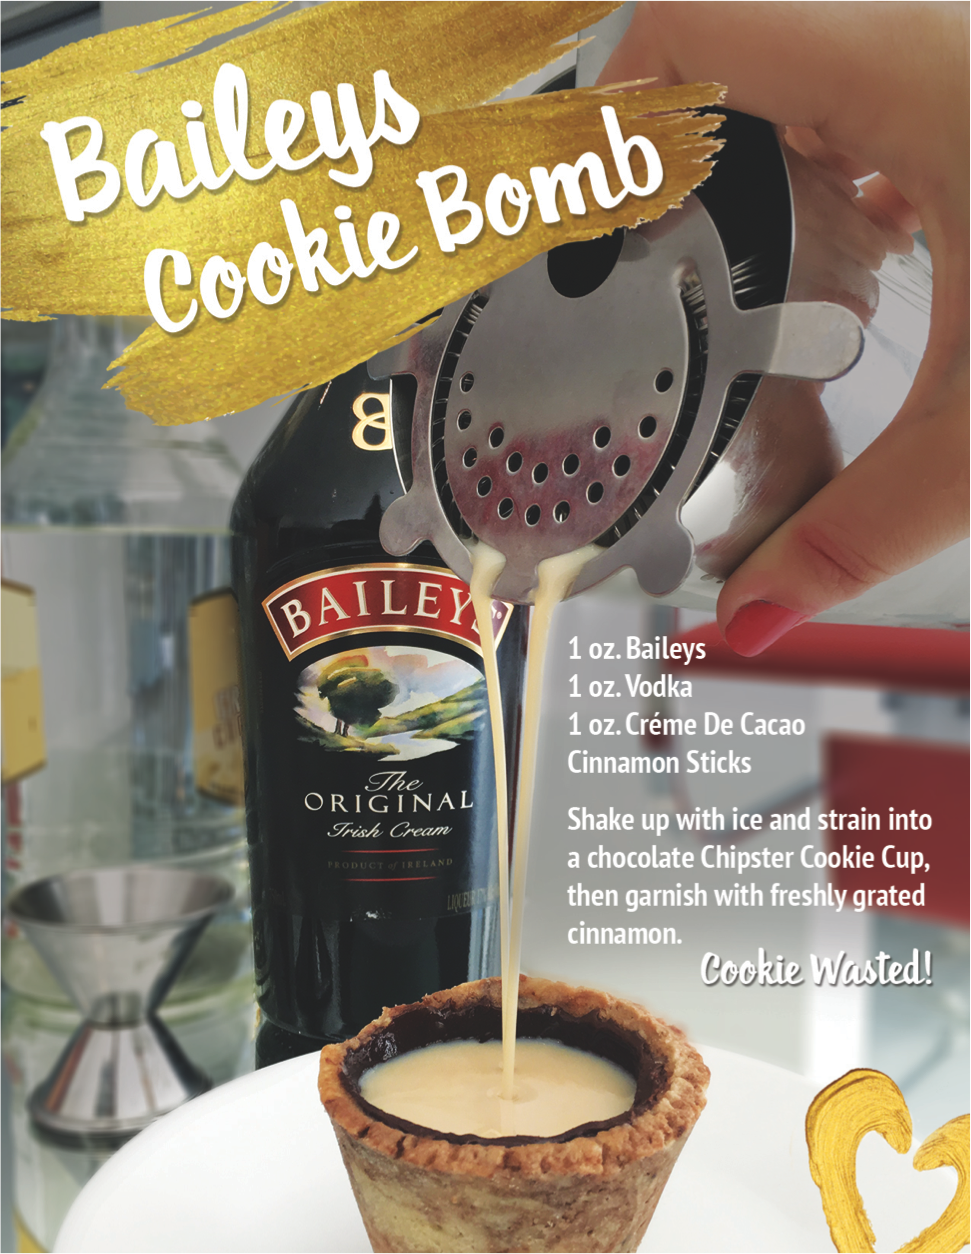 Bailey's Cookie Bomb   - Pair with a Chocolate Chipster or Mocha Dream Cookie Cup 1 oz. Baileys 1 oz vodka1 oz. Créme De CacaoShake up with ice and strain into Cookie Cup of your choice. Garnish with freshly grated cinnamon.Fills approximately 3 Cookie Cups